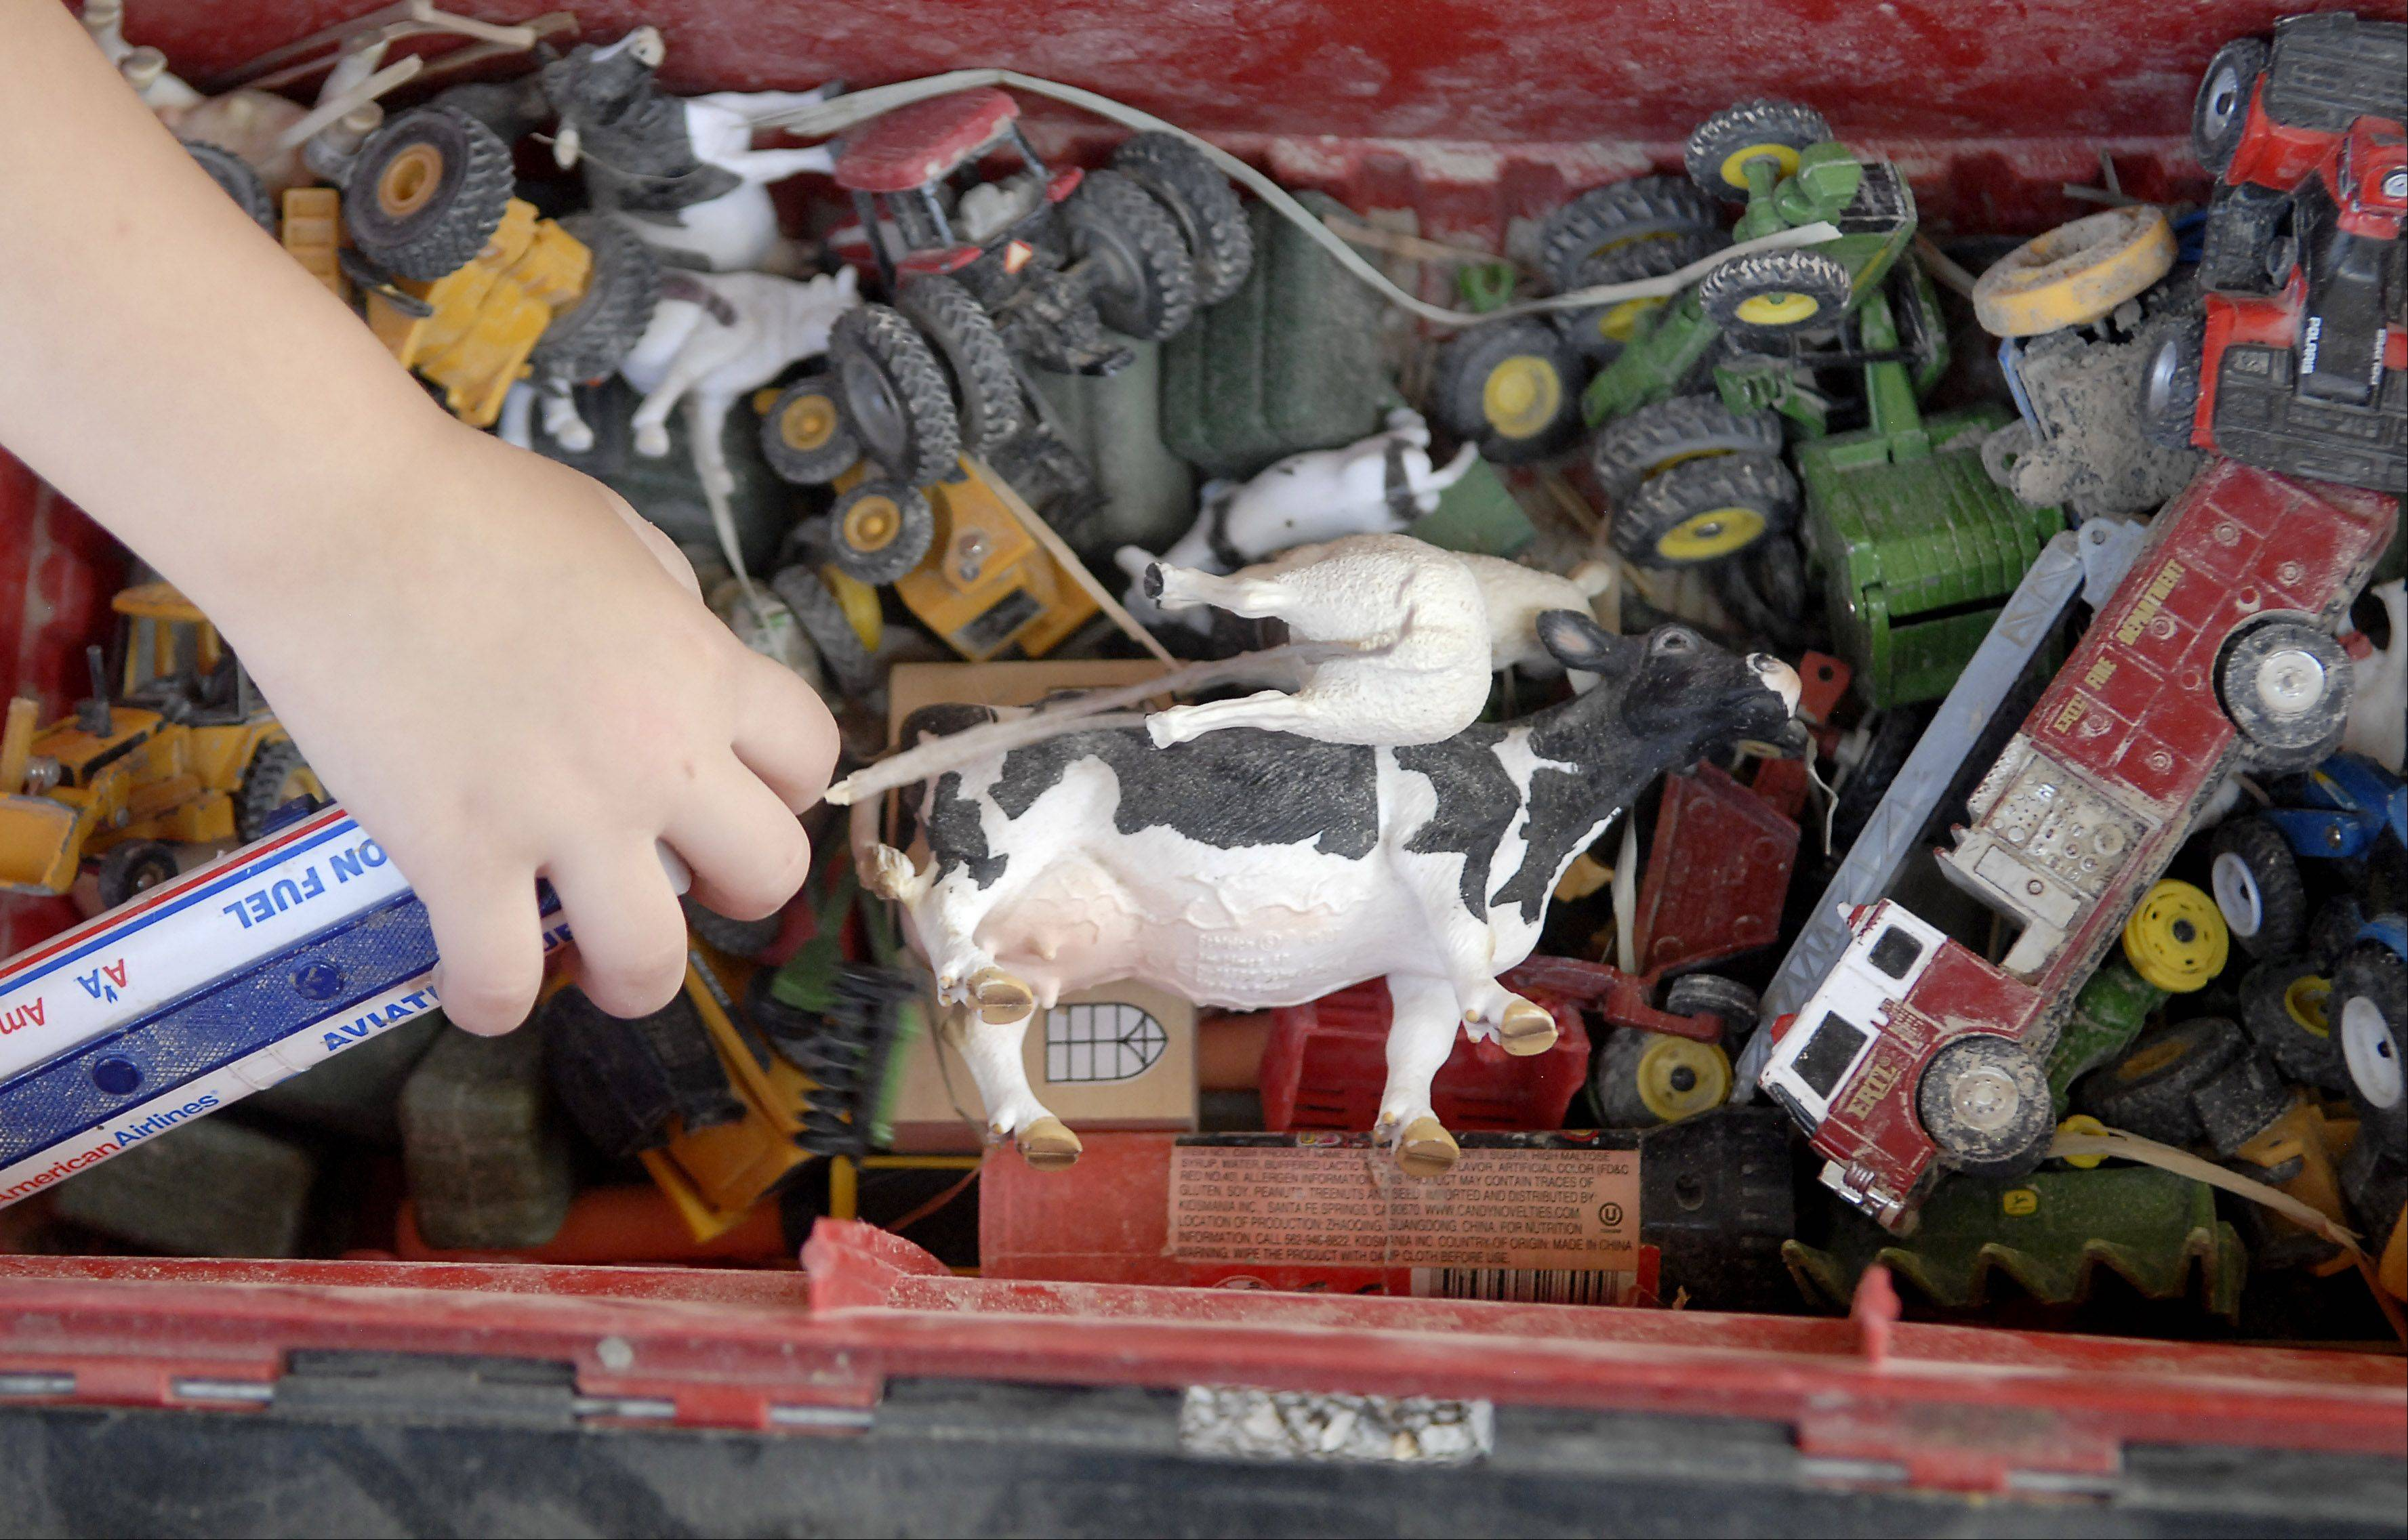 Isabel Stohlquist, 2, of Poplar Grove reaches into a toolbox full of farm machinery toys, a Holstein and a sheep, while family members show dairy cattle during the second day of the Kane County Fair on July 19.